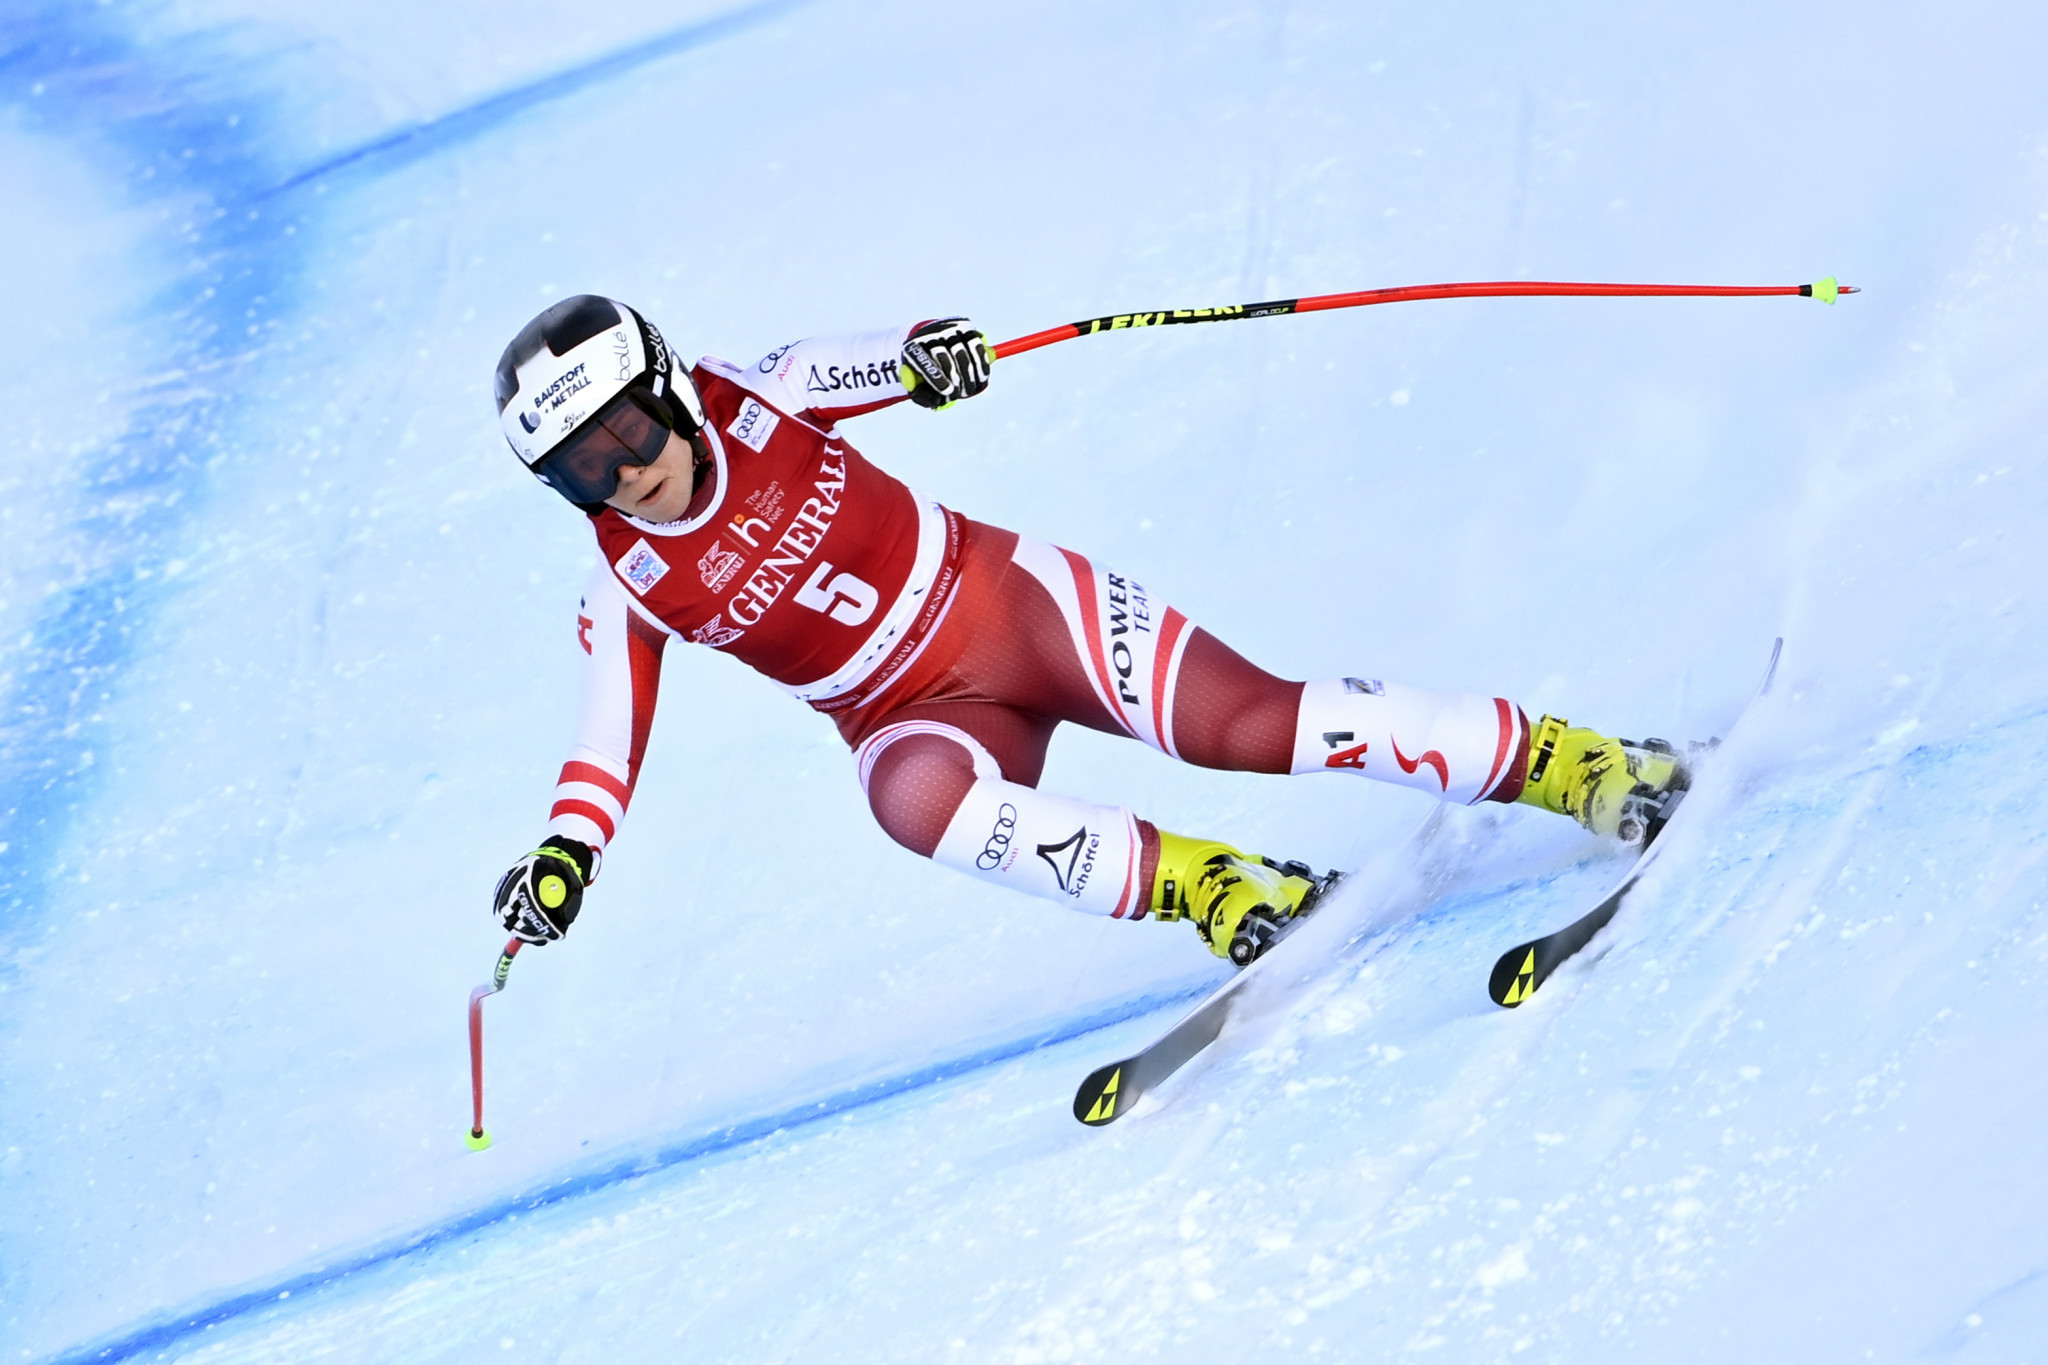 Schmidhofer returns from injury as Austria holds Alpine skiing training camps